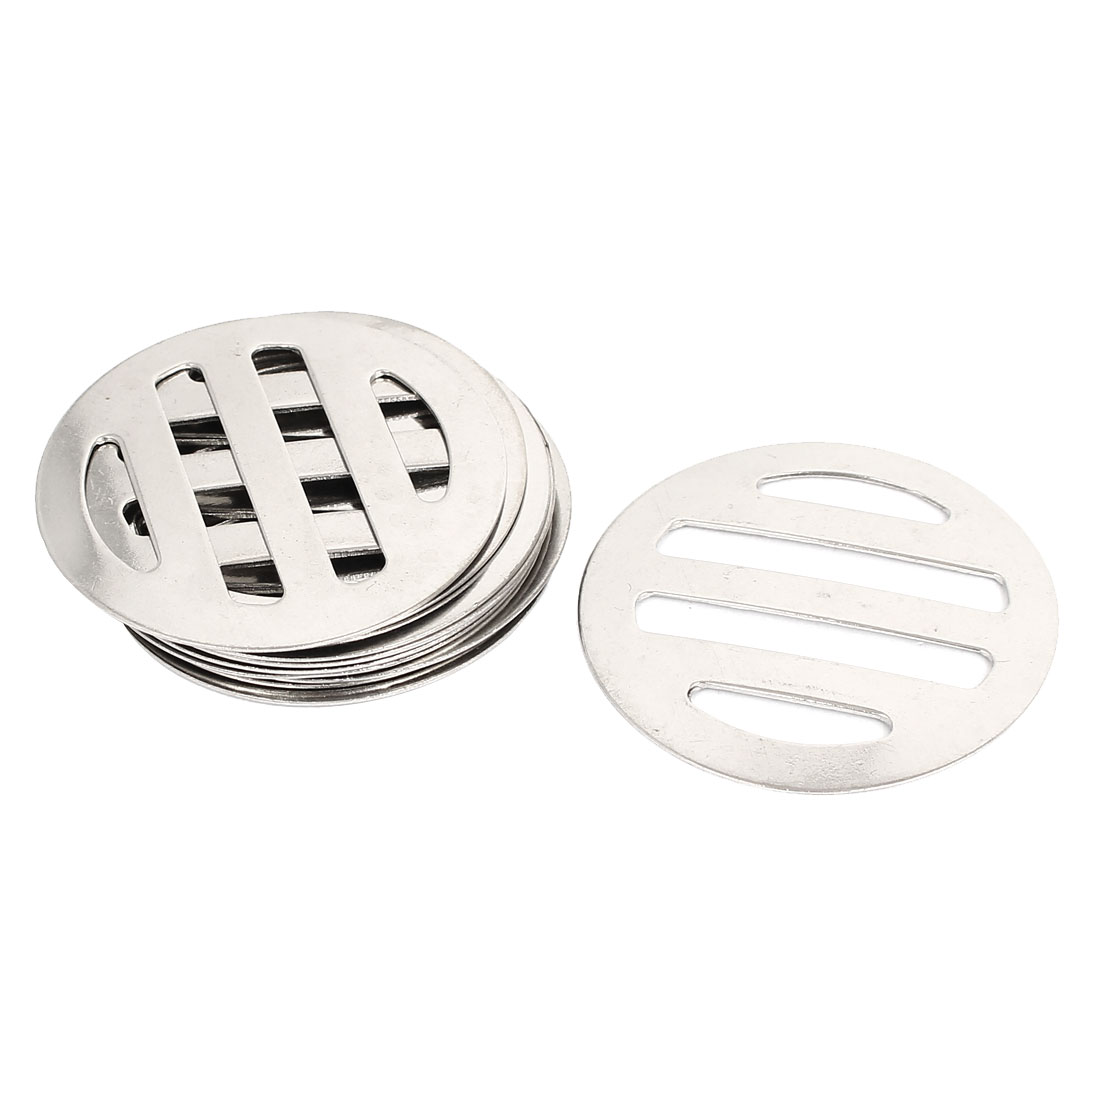 "10 Pcs 5cm 2"" Diameter Round Shape Metal Floor Drain Covers Silver Tone"